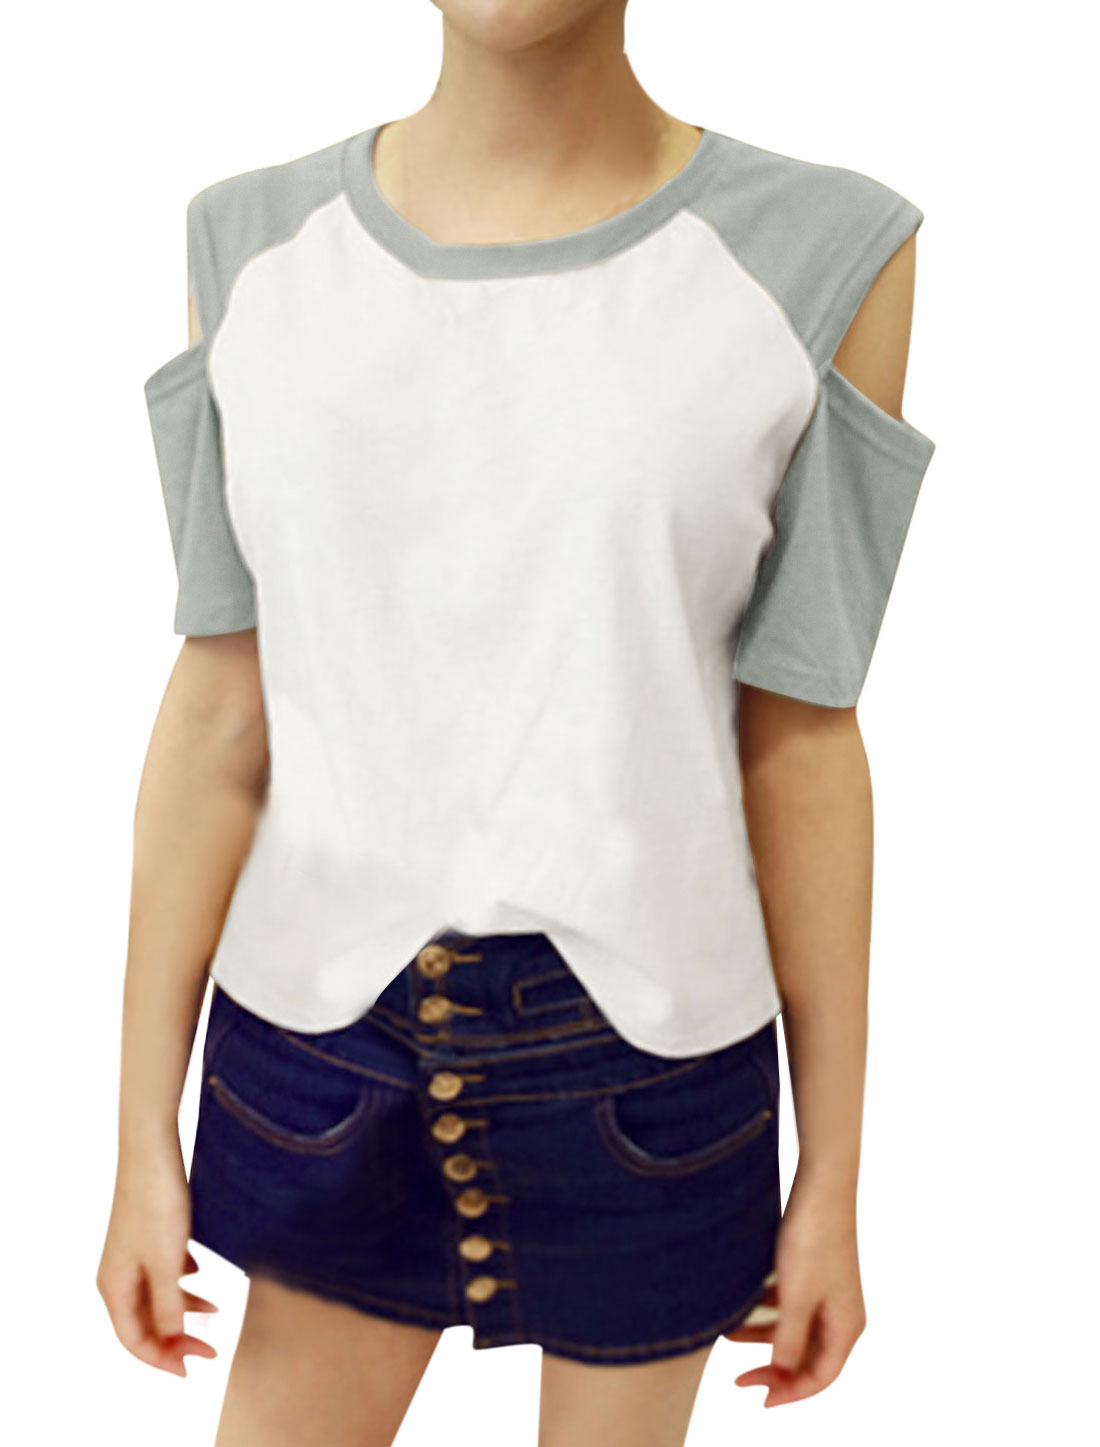 Lady Short Raglan Sleeve Color Block Cut Out Shoulder Tee Shirt Light Gray White S